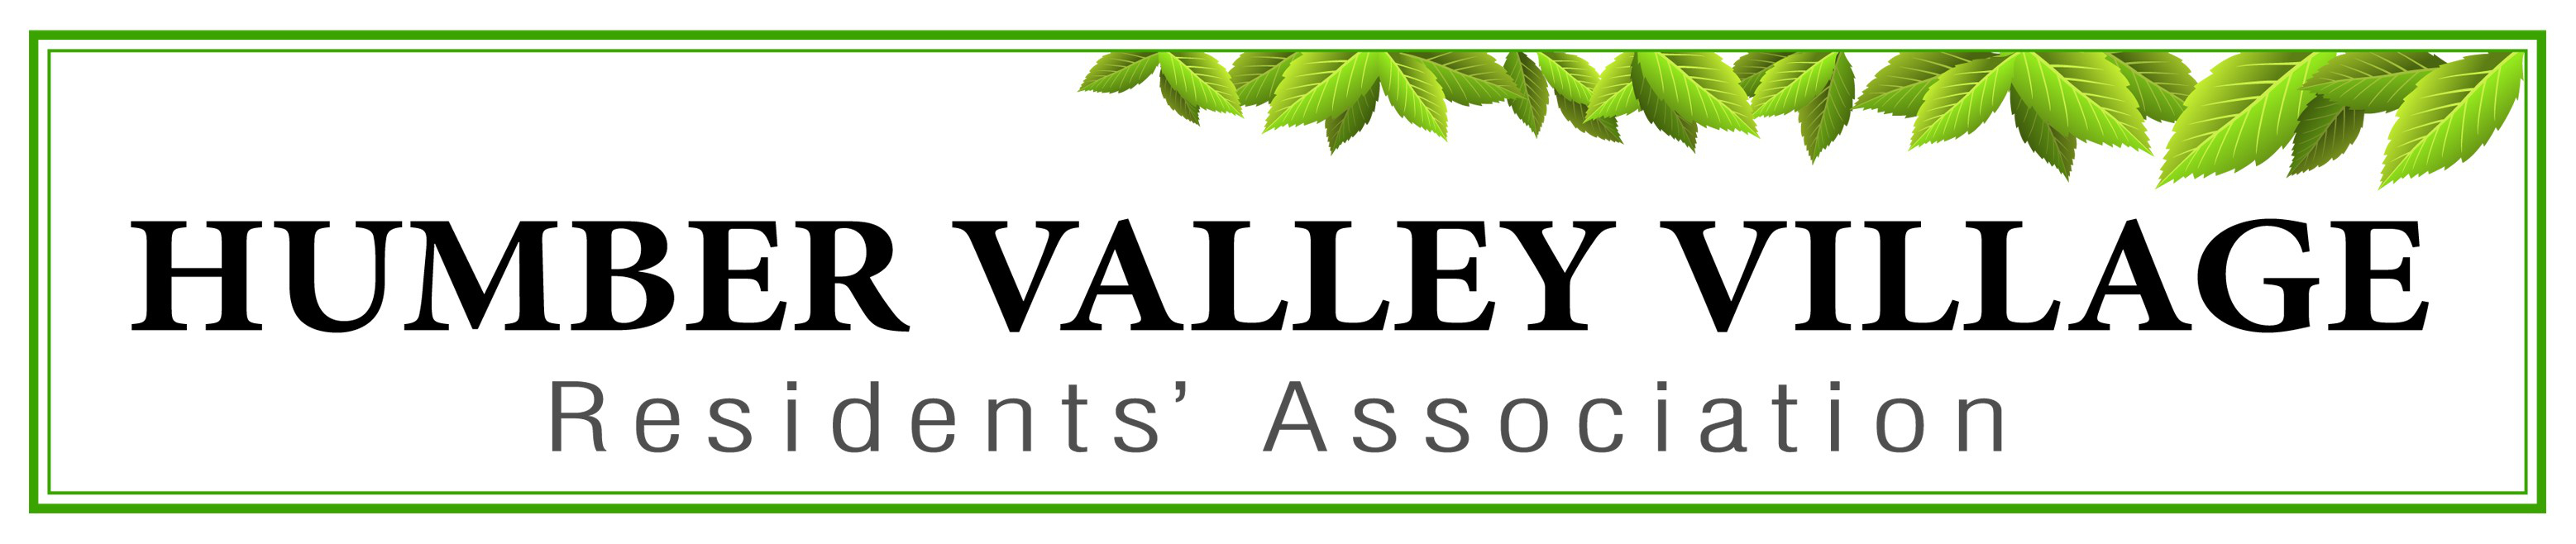 Humber Valley Village Residents' Association